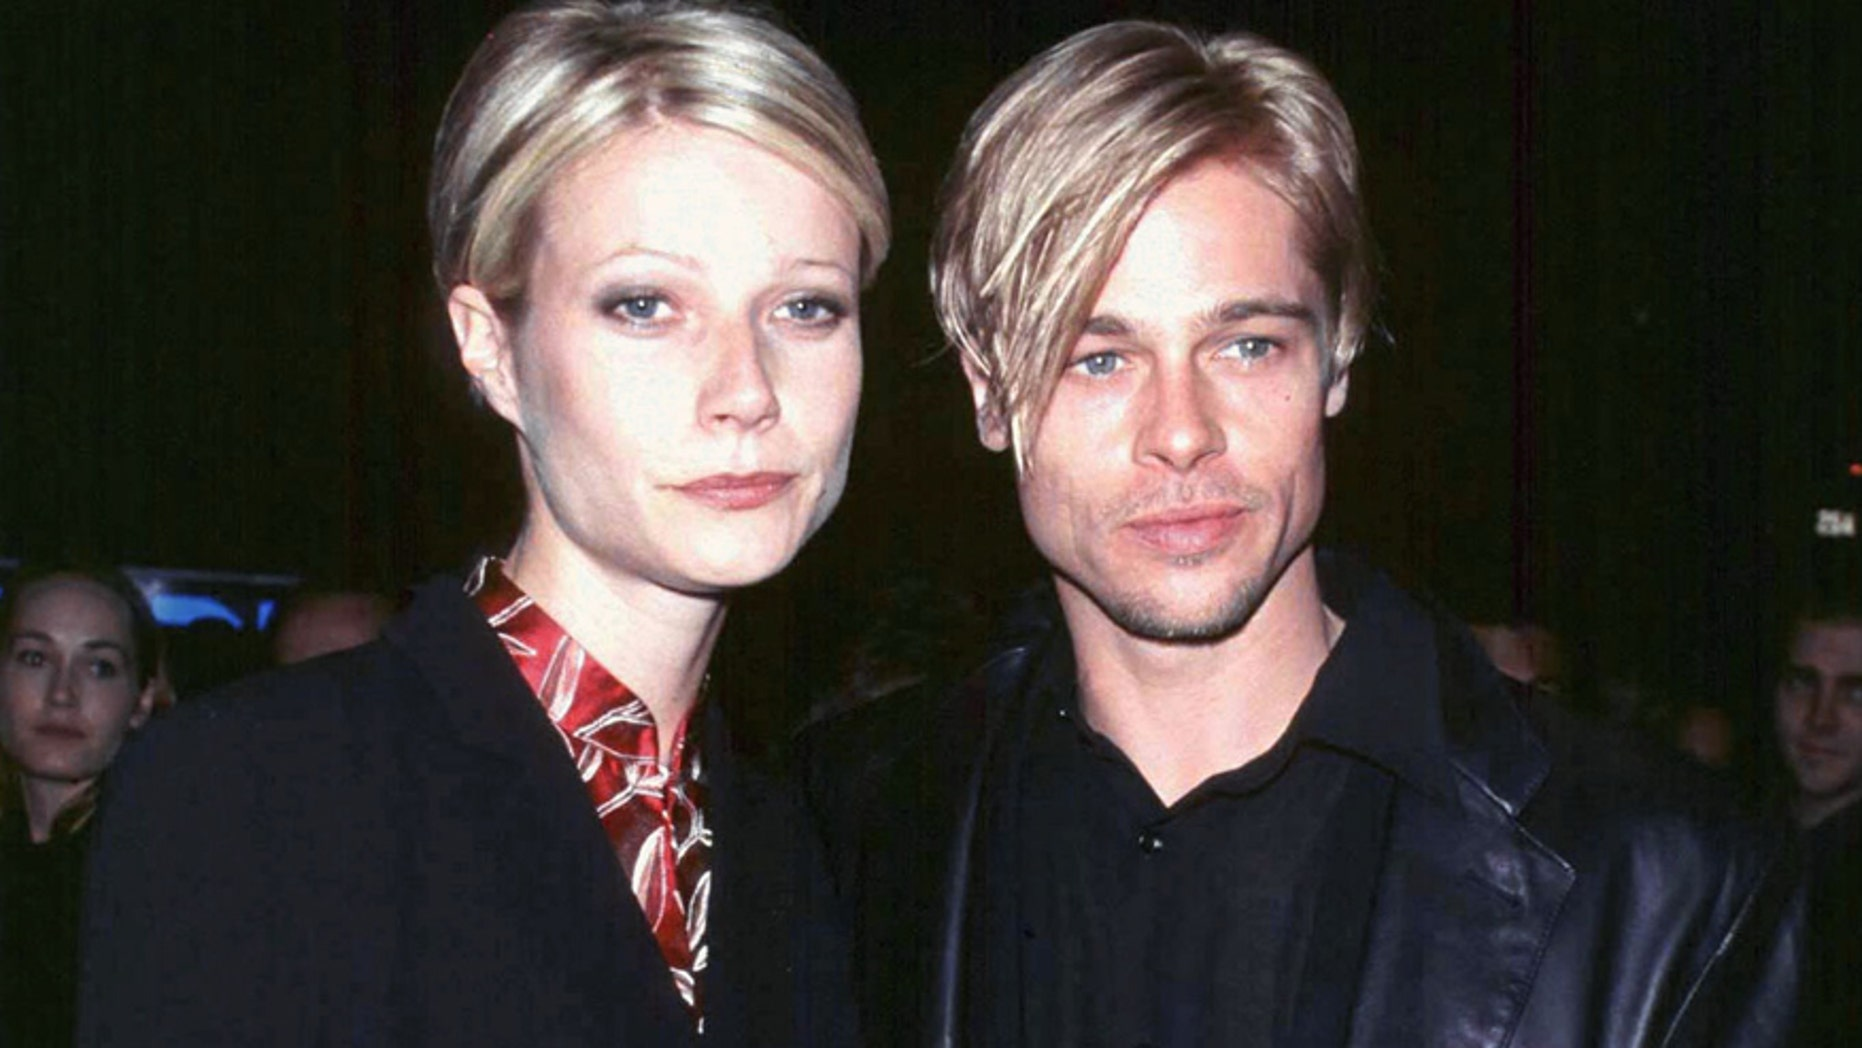 """Actor Brad Pitt and his girlfriend, actress Gwyneth Paltrow, at the New York premiere of Pitt's new film """"The Devil's Own""""  March 13. The film is a Capitol-TriStar Pictures release. ** POOR QUALITY FROM SOURCE ** - RTXHMIZ"""